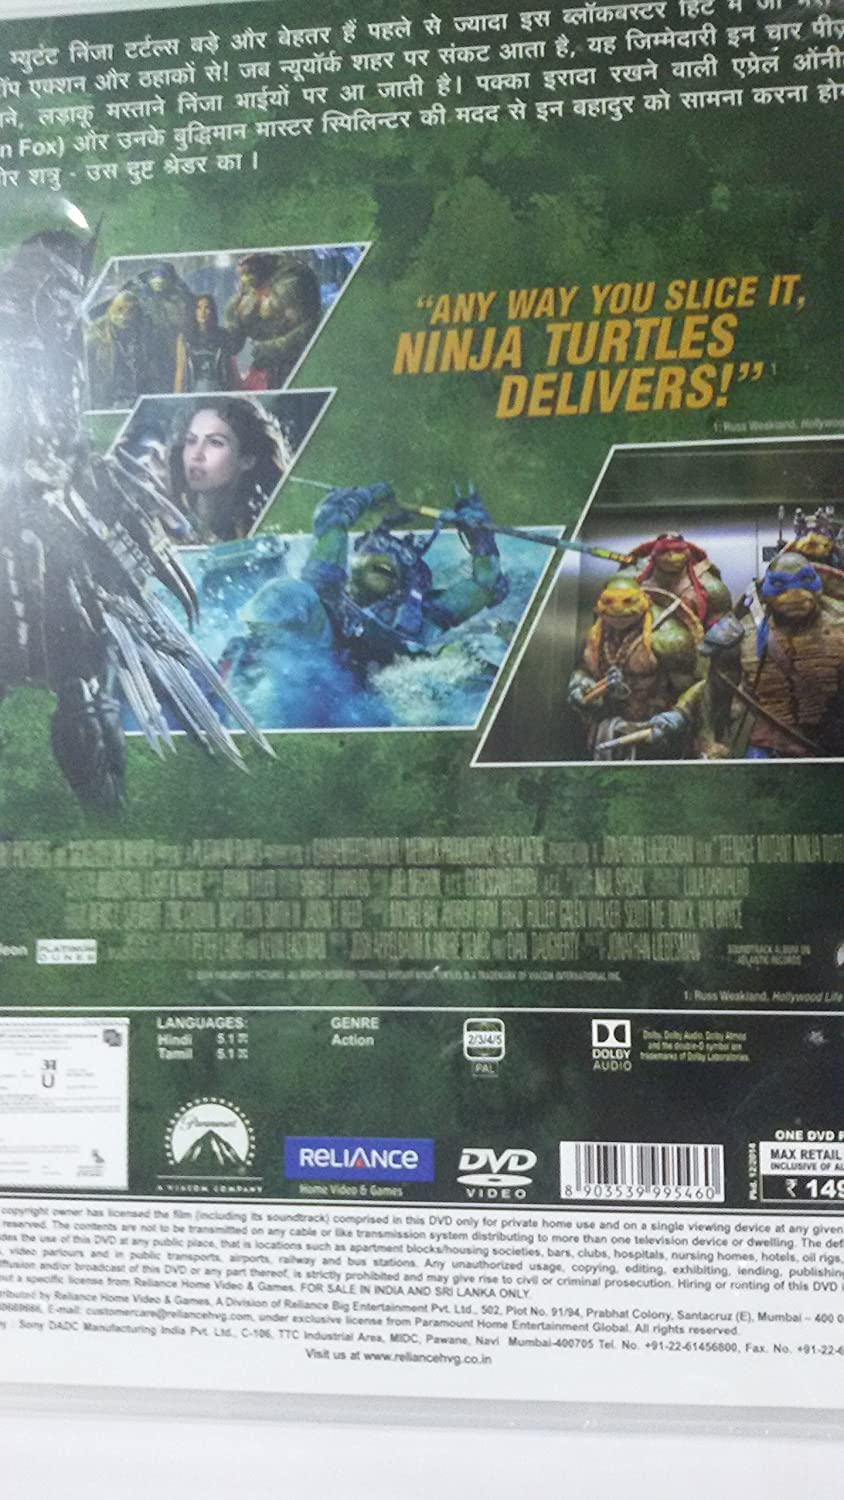 Teenage Mutant Ninja Turtles (Hindi): Amazon.es: Cine y ...